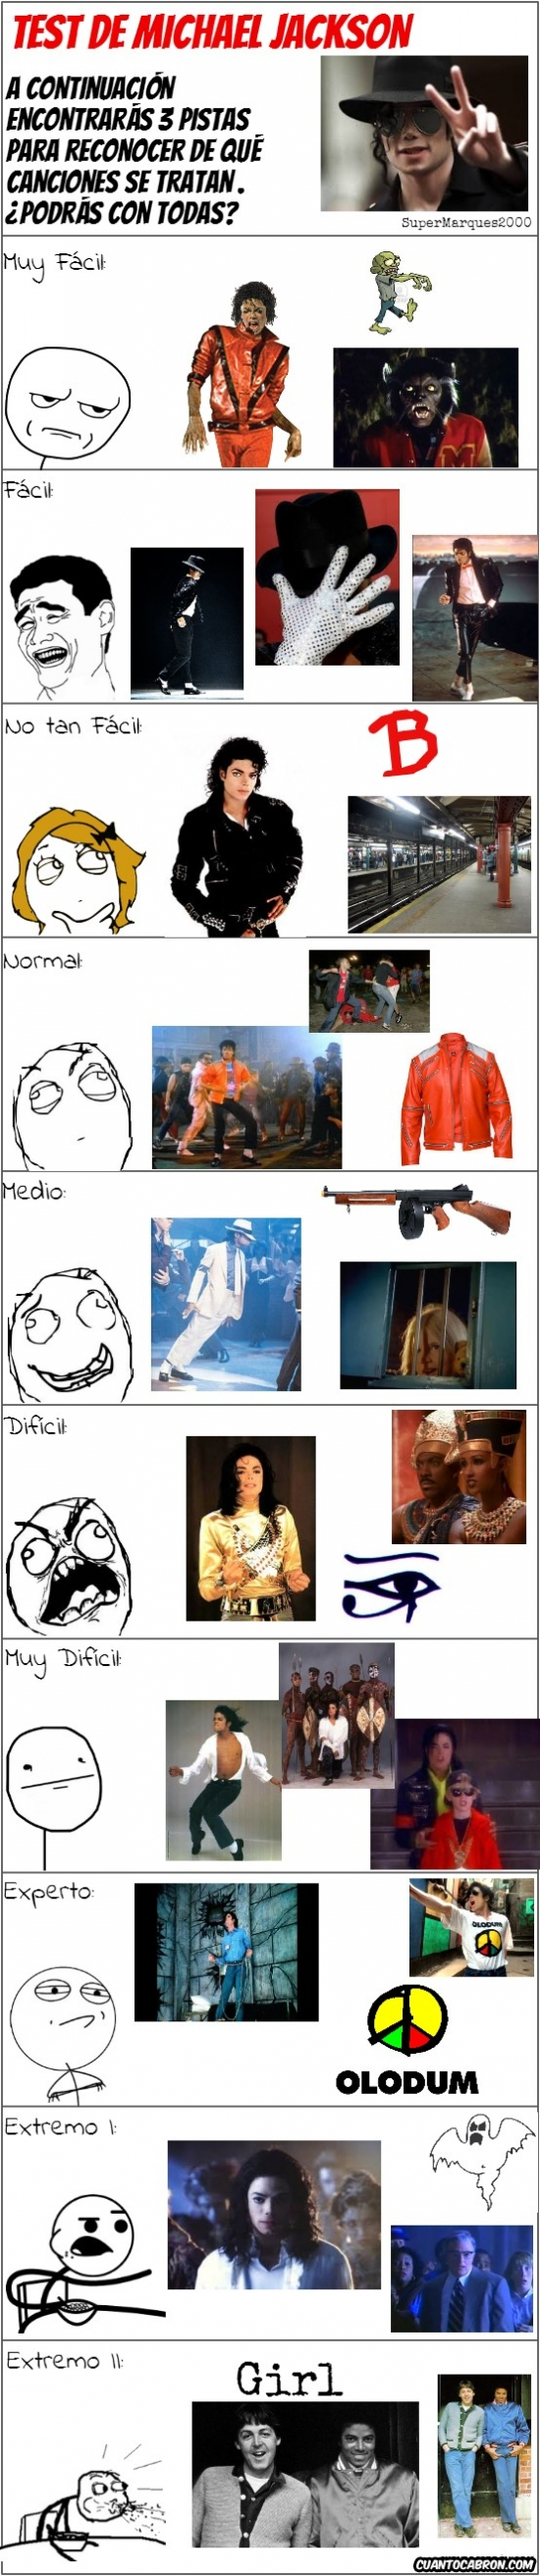 canciones,cereal guy,challenge accepted,difícil,Michael Jackson,música,test musical,yao ming